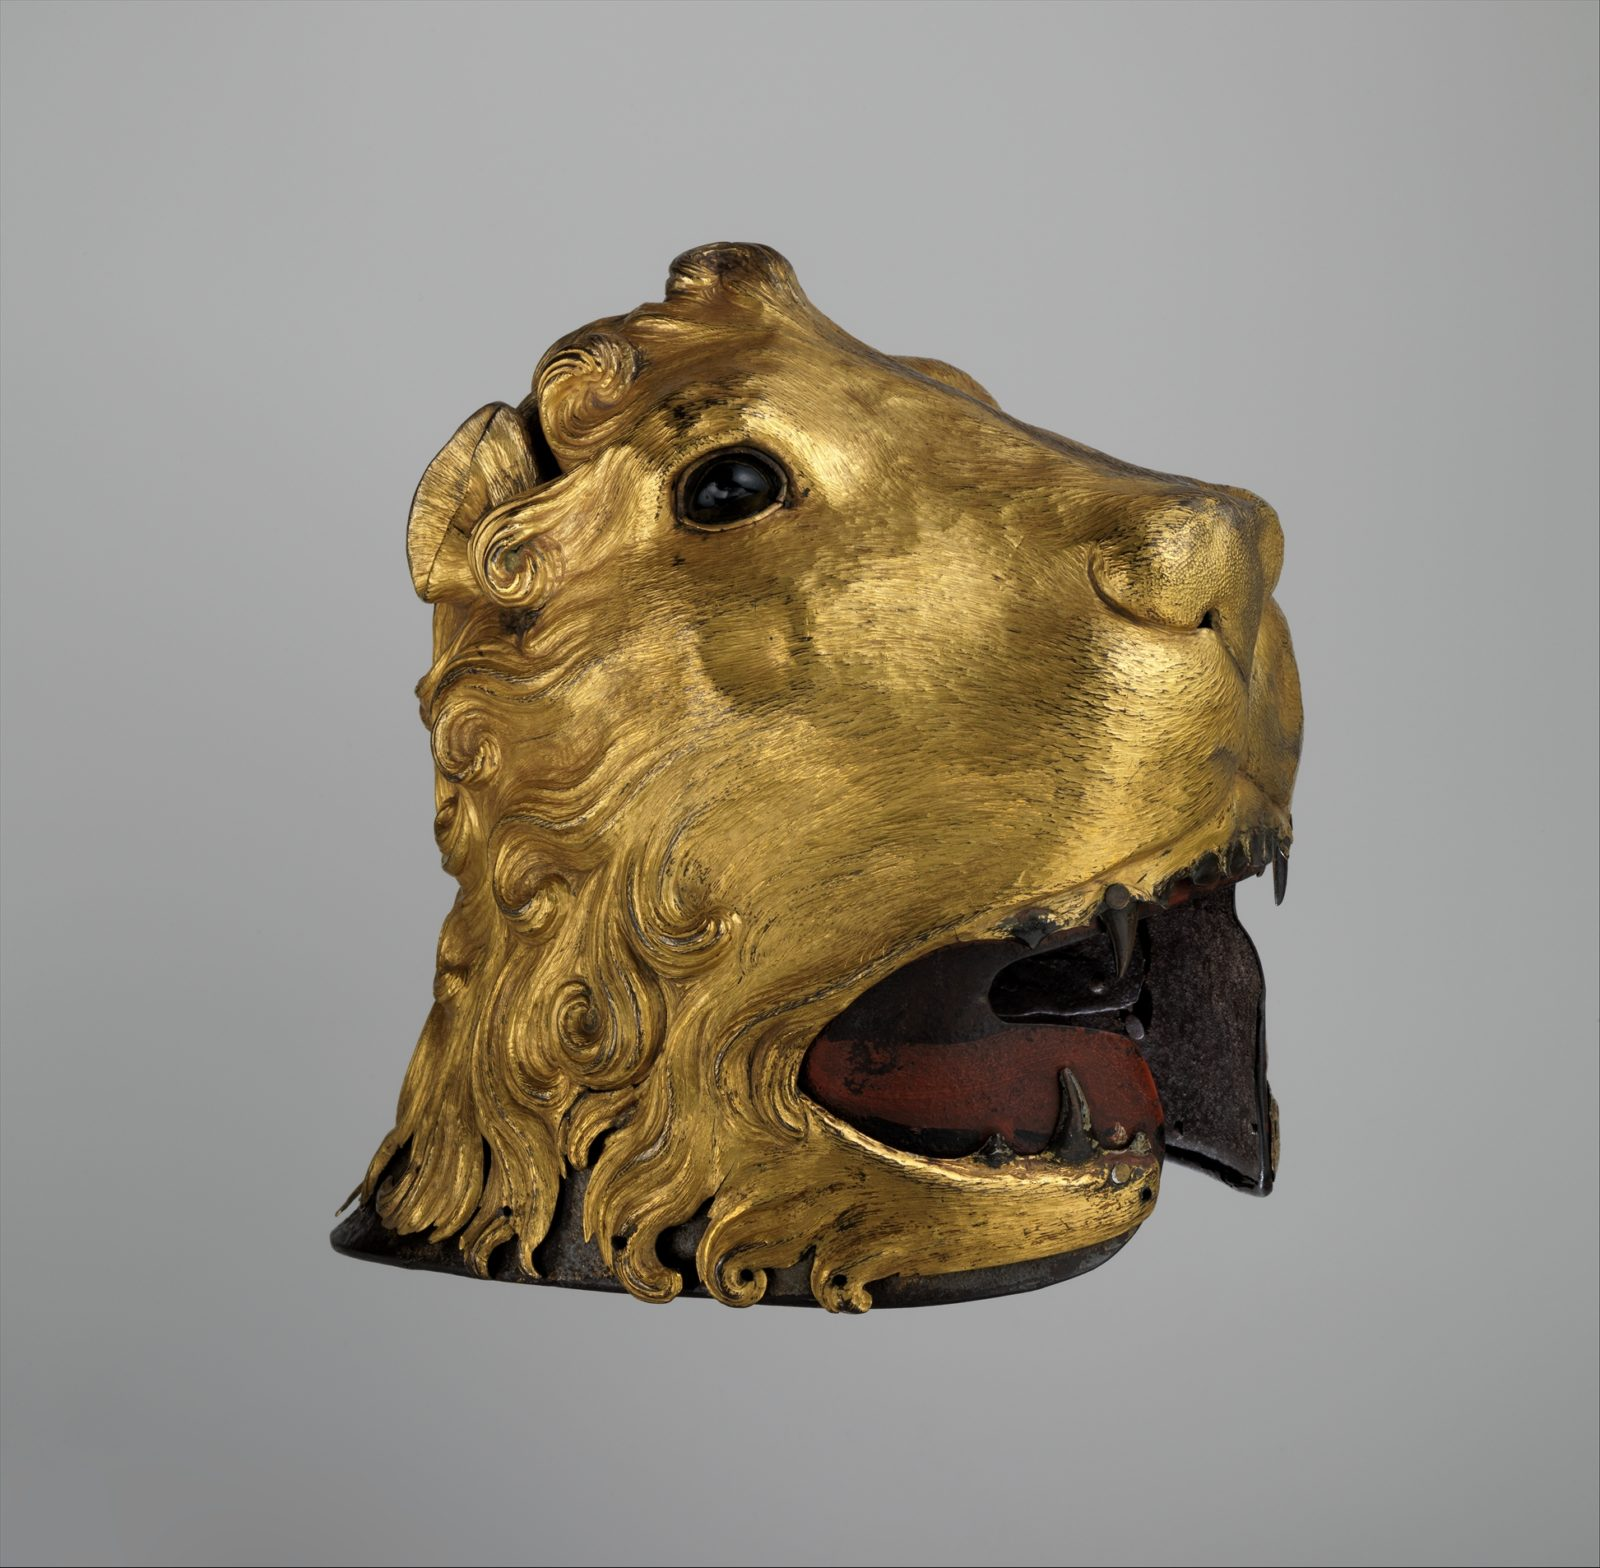 Sallet in the Shape of a Lion's Head